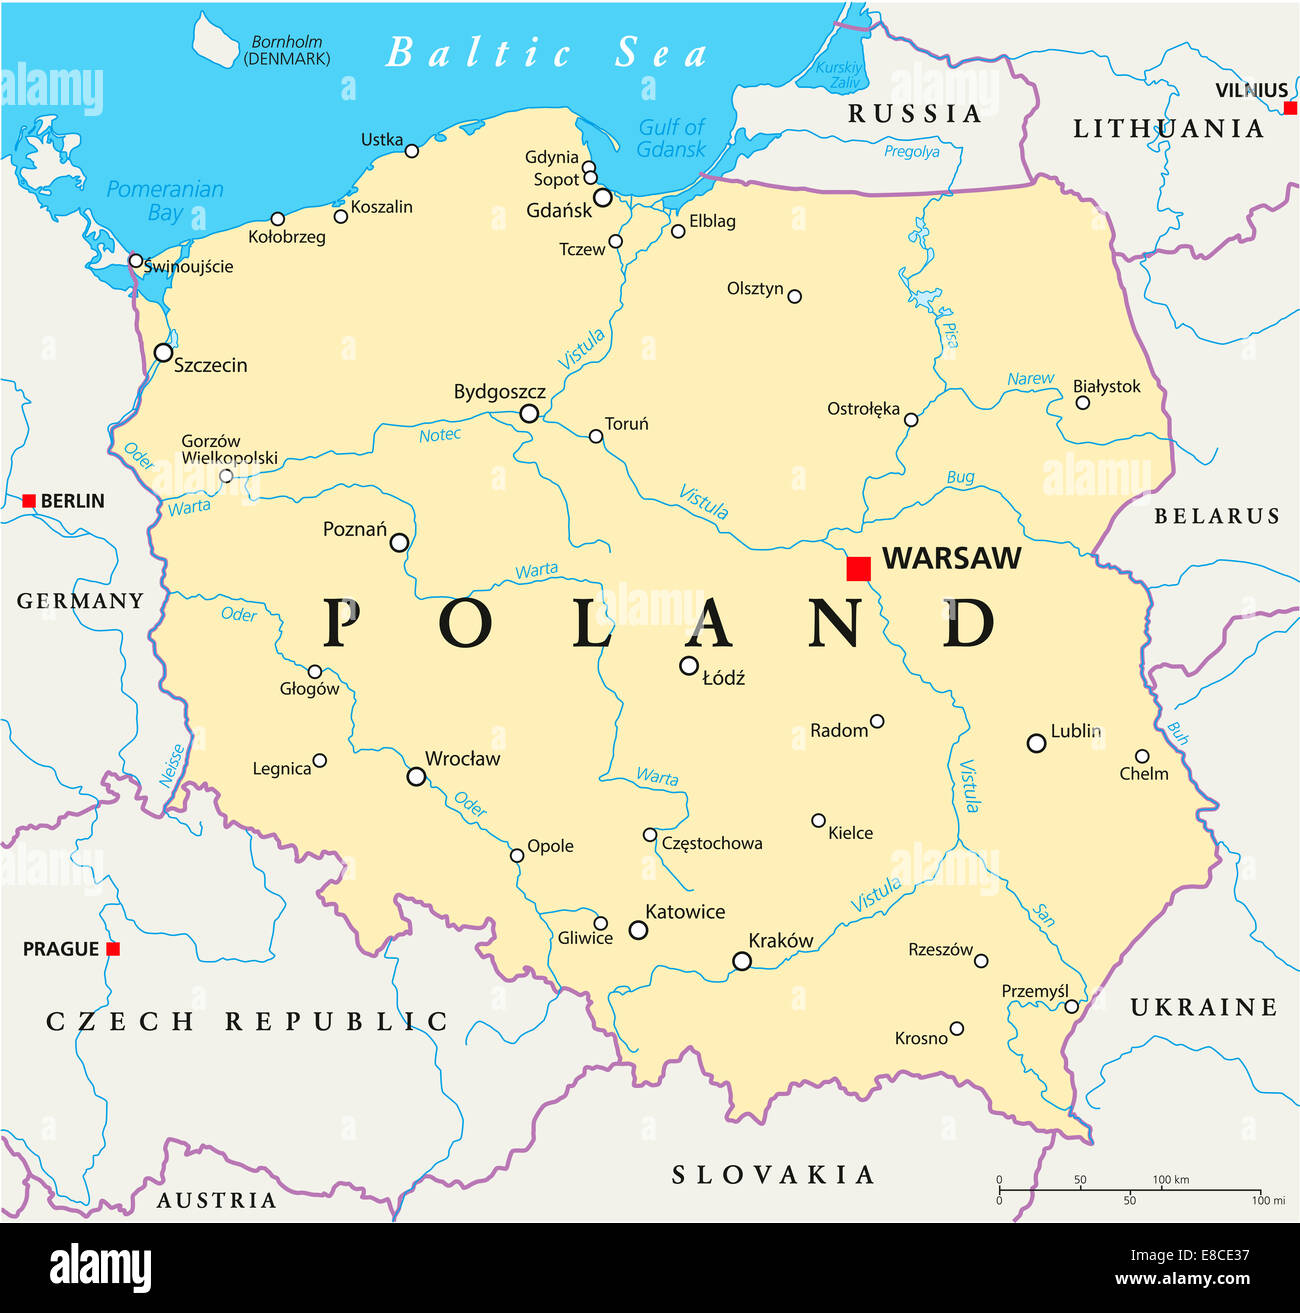 Poland Political Map With Capital Warsaw National Borders Most Important Cities Rivers And Lakes English Labeling Scaling